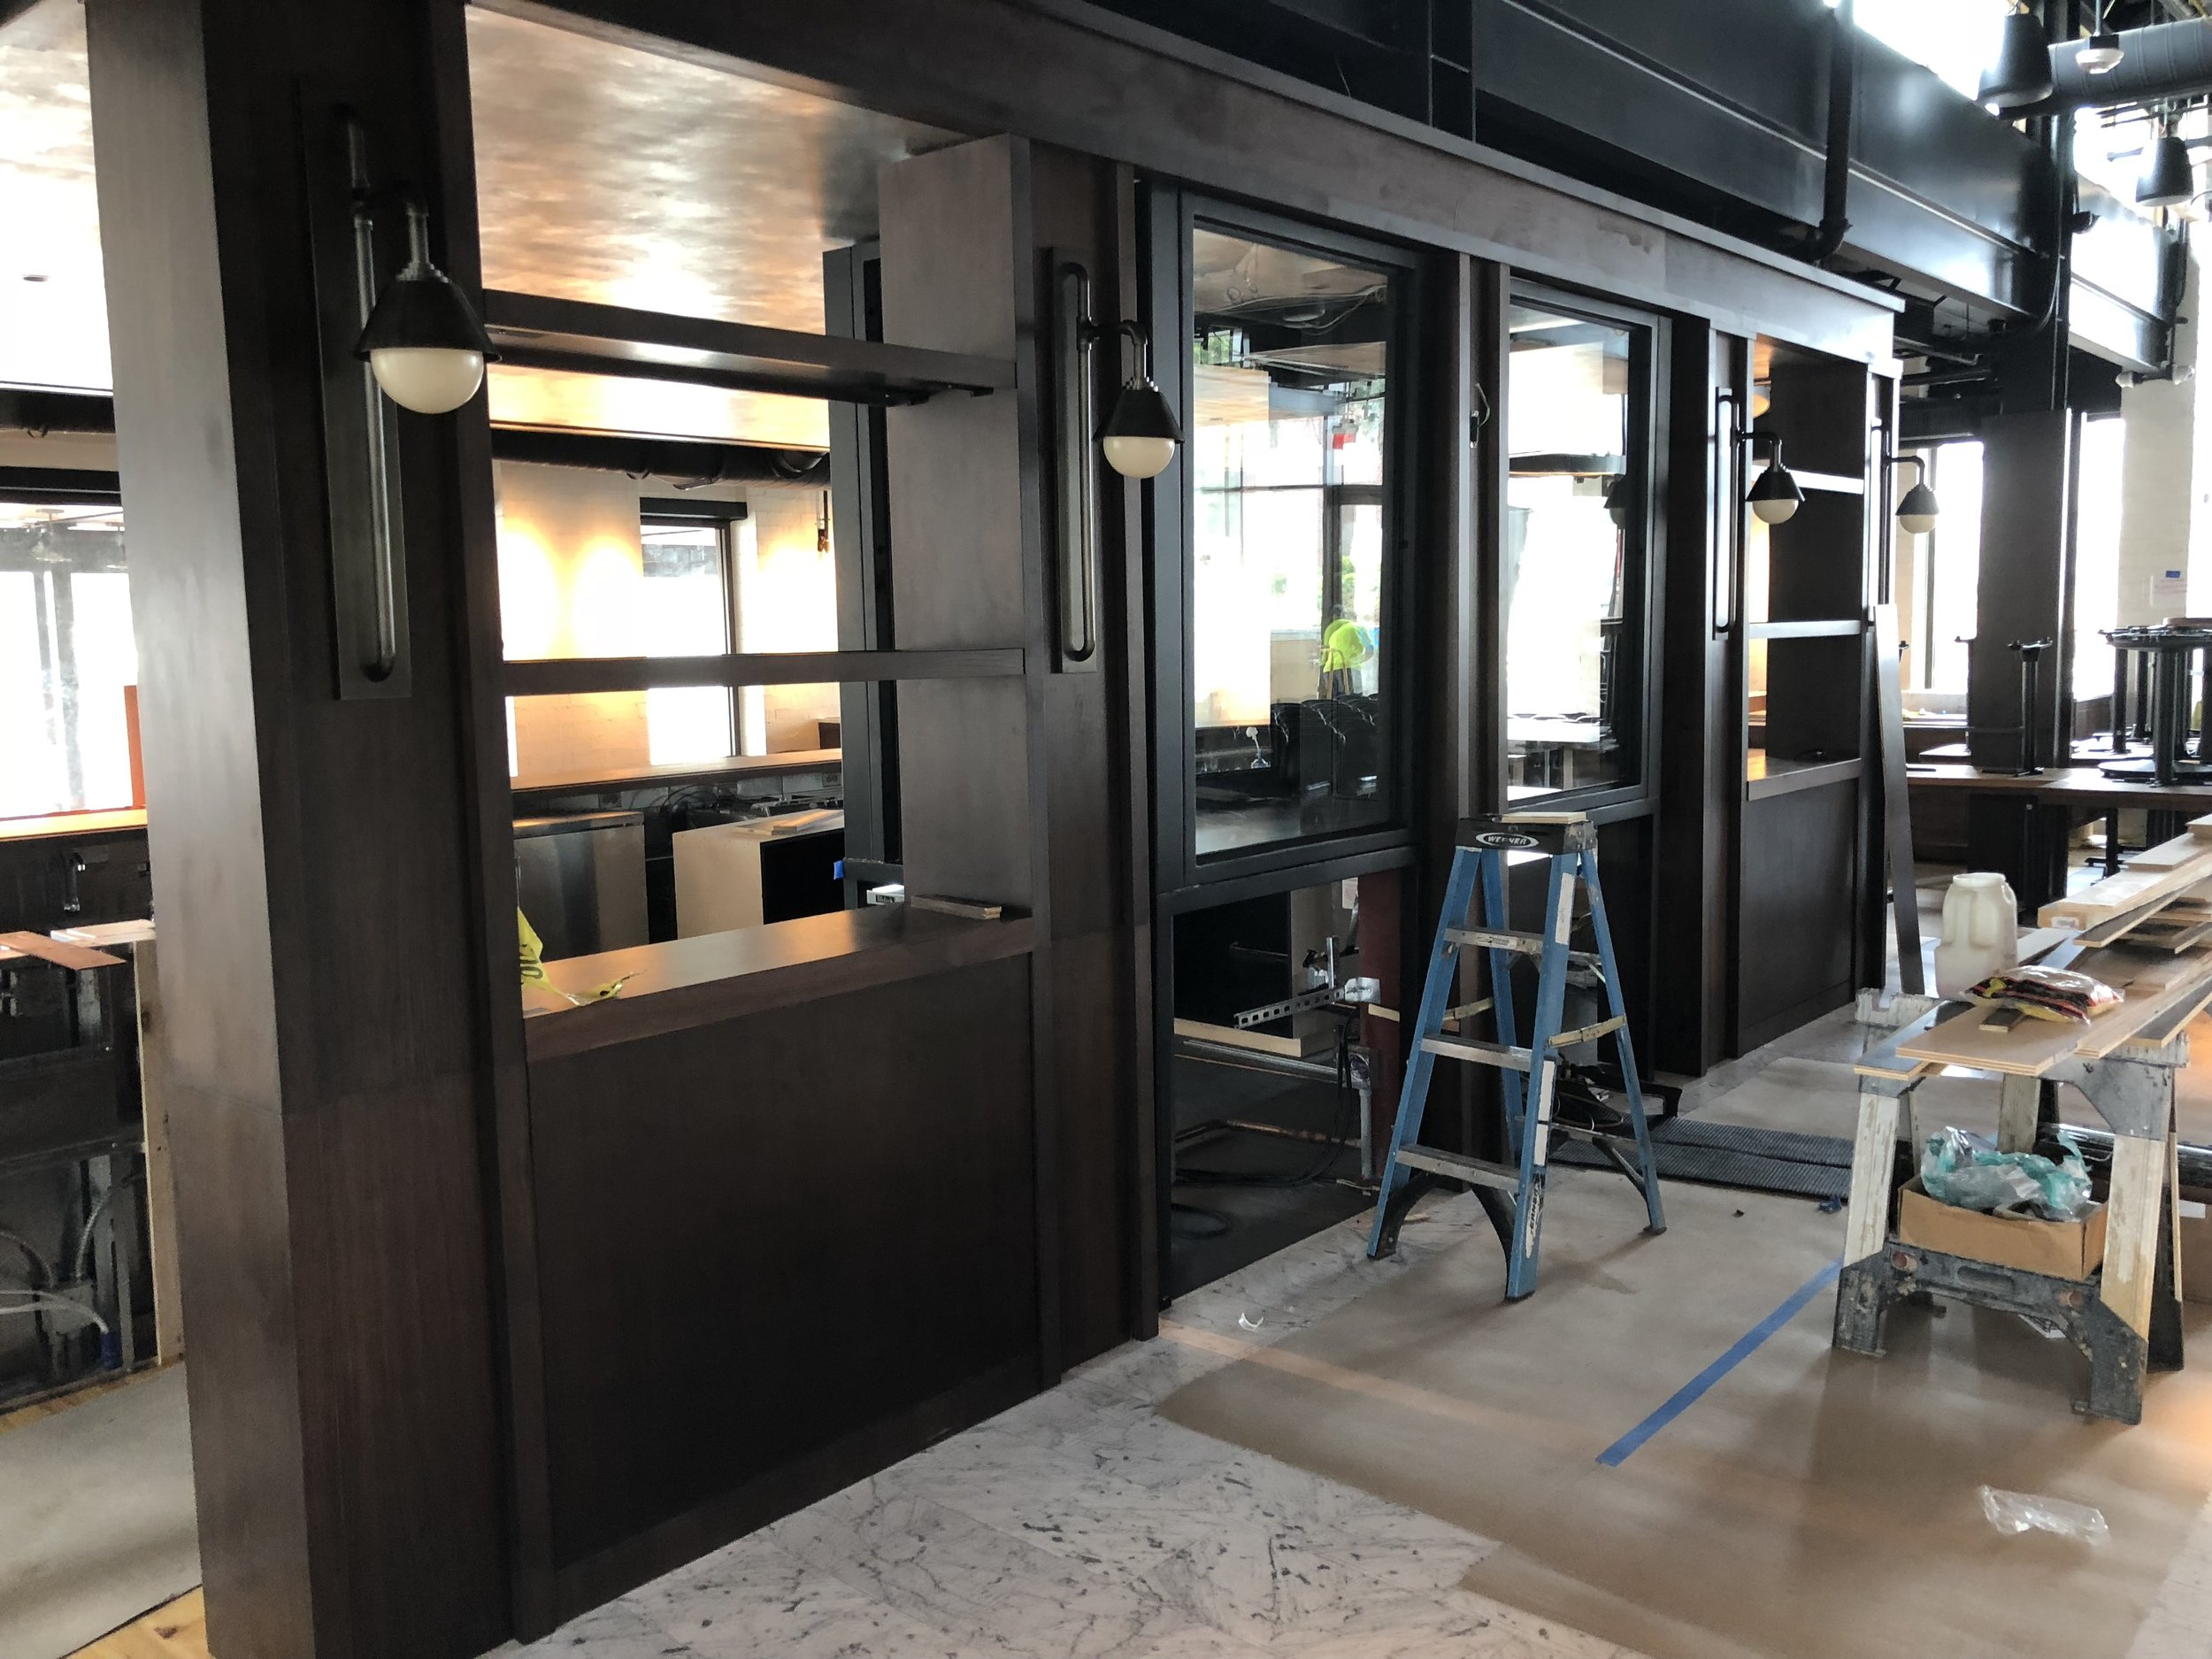 December 2018 - Installed this wood bar detail at the new Ecco Restaurant near Phipps Plaza in Atlanta.